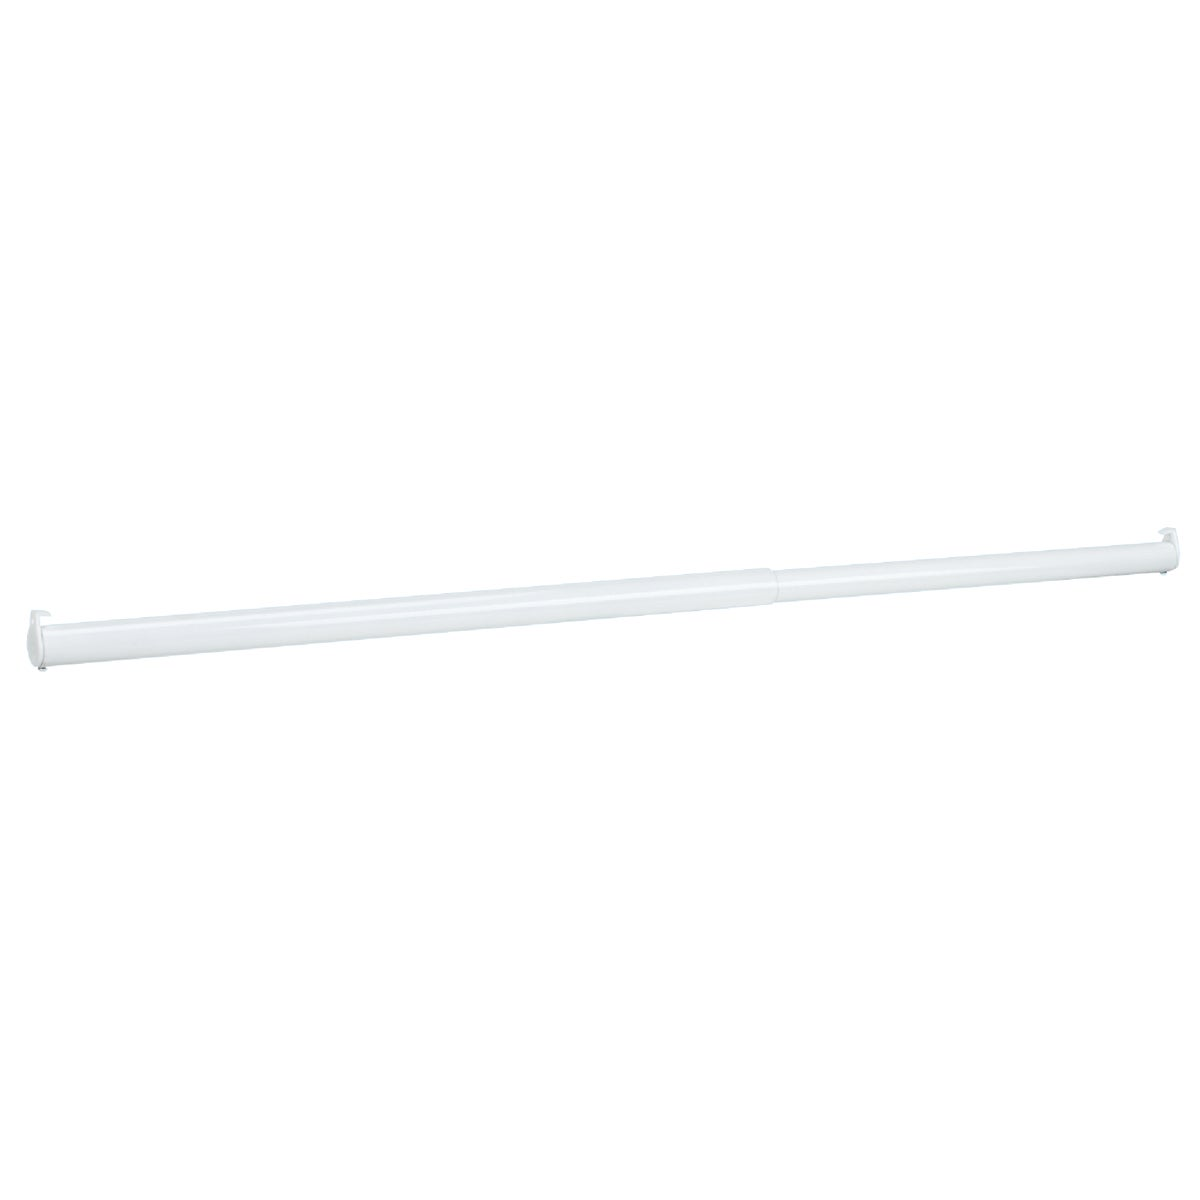 John Sterling Closet-Pro 1-1/4 In. Adjustable Closet Rod, RP-0021-30/48